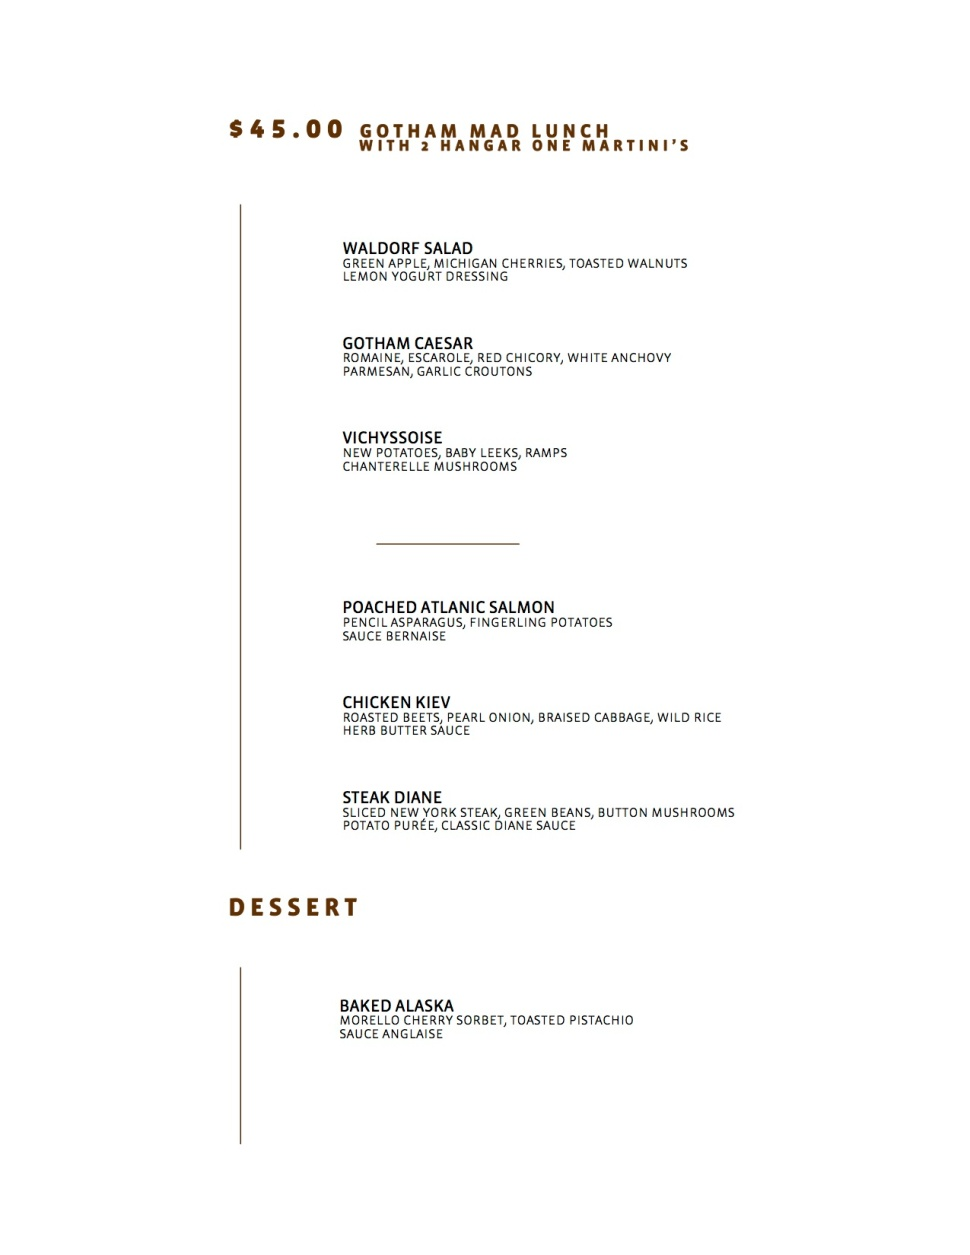 Gotham Mad Lunch Menu copy